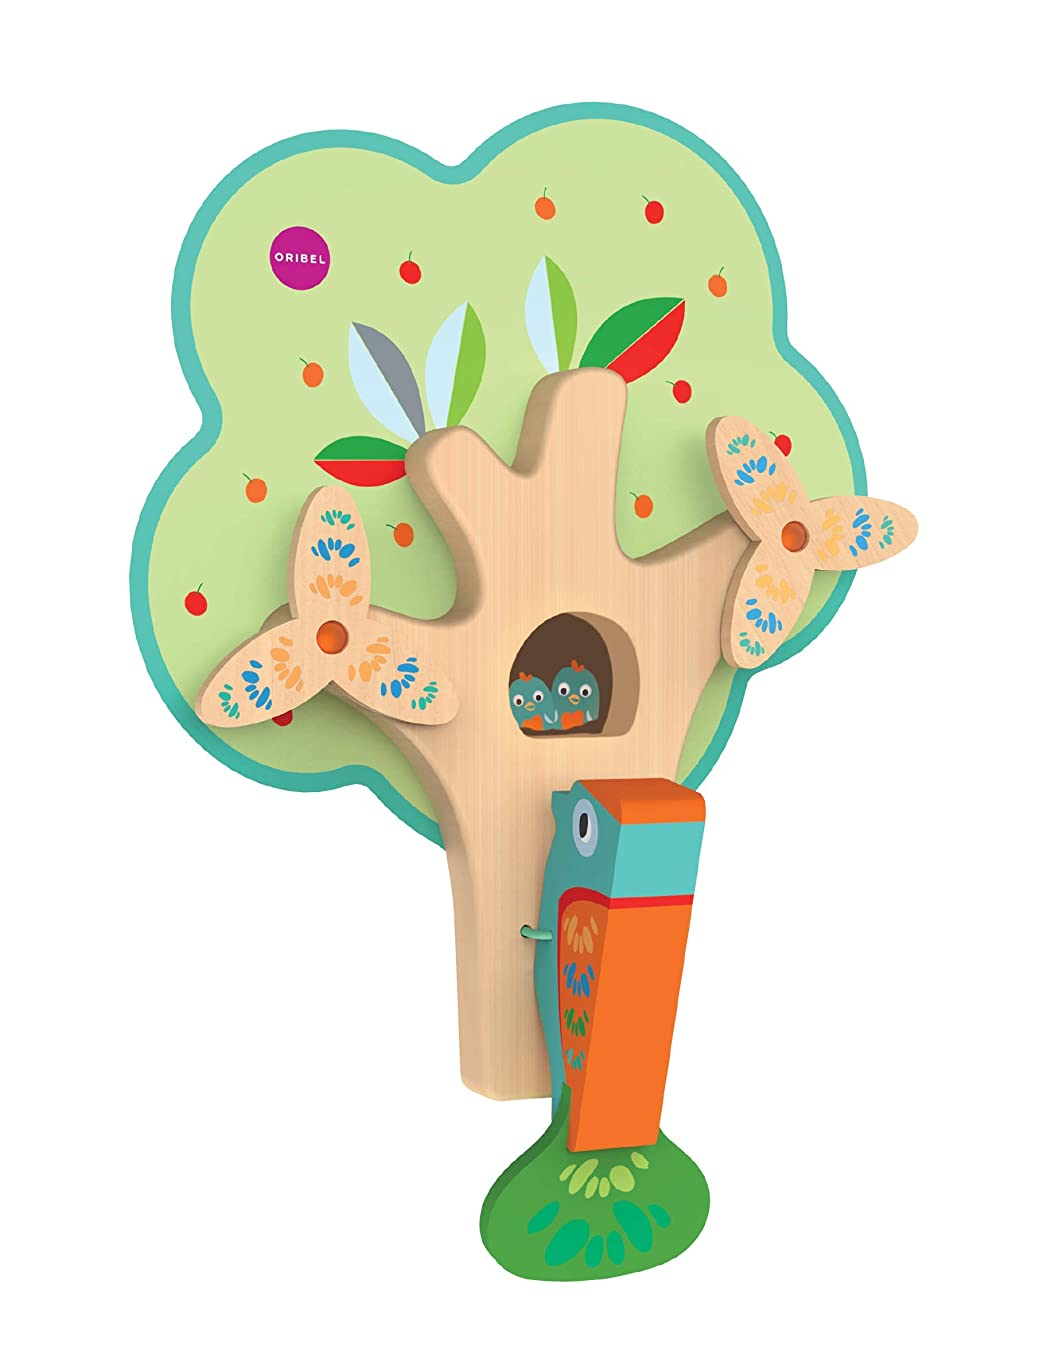 ORIBEL VertiPlay (Wall Toy) Busy Woodpecker, Wooden Toy and Nursery Room Decor | Easy to Install, Just Stick & Play?